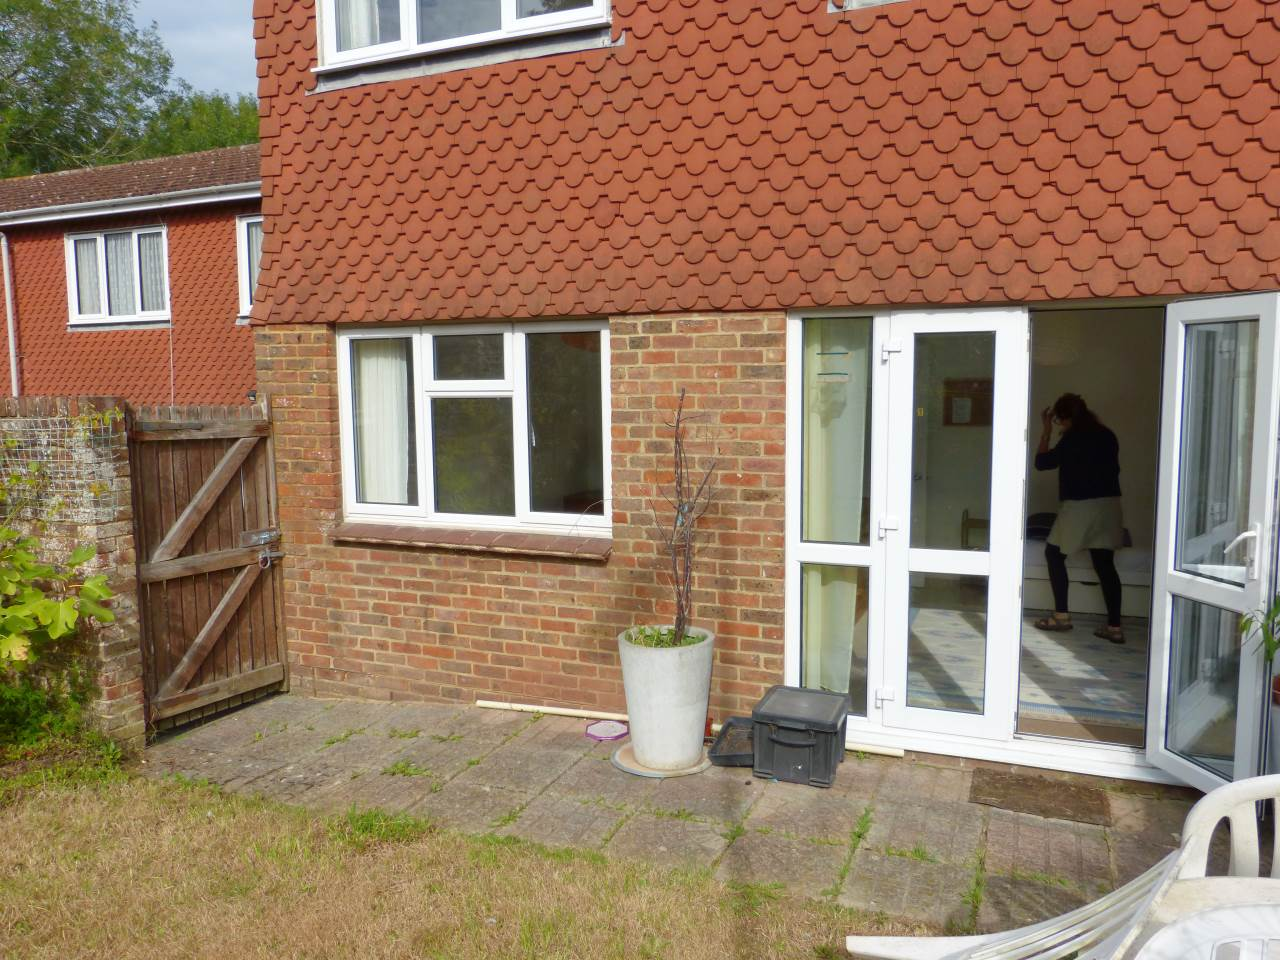 4 bed house to rent in 16 Hoopers Close Lewes BN7 2EH 0